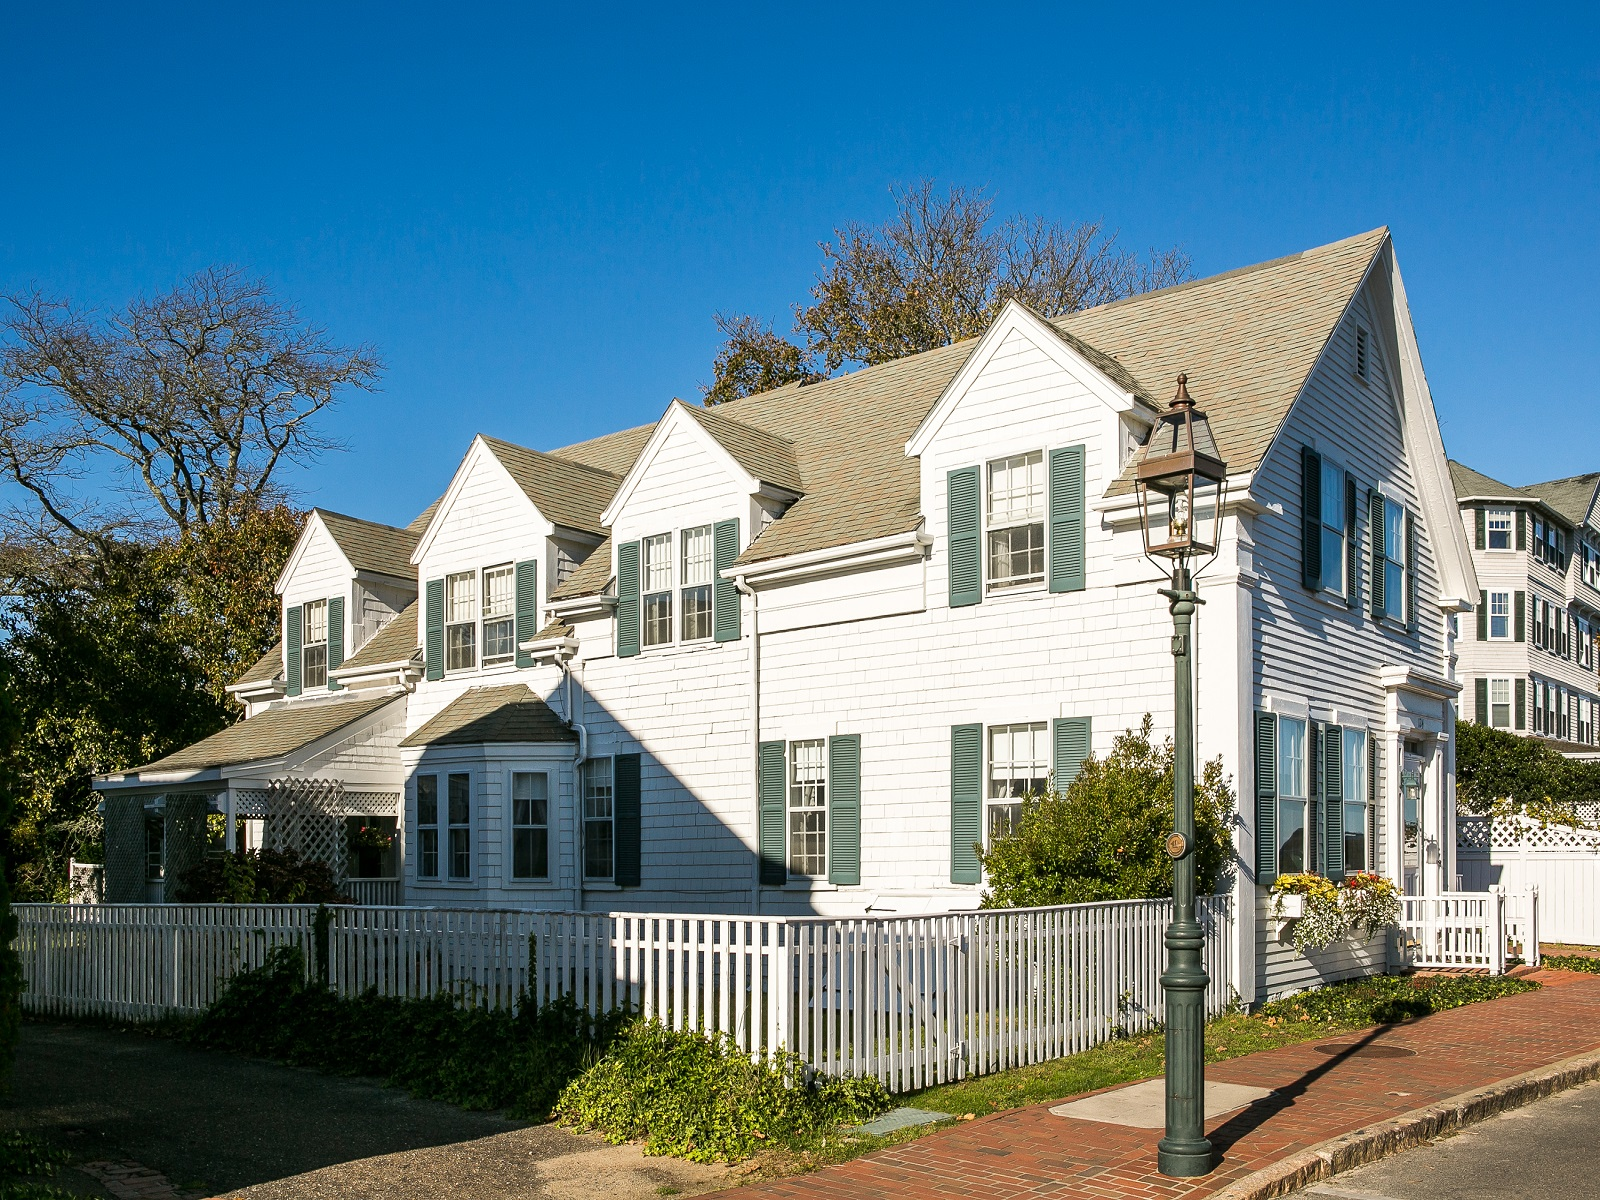 Property For Sale at North Water Street, Edgartown